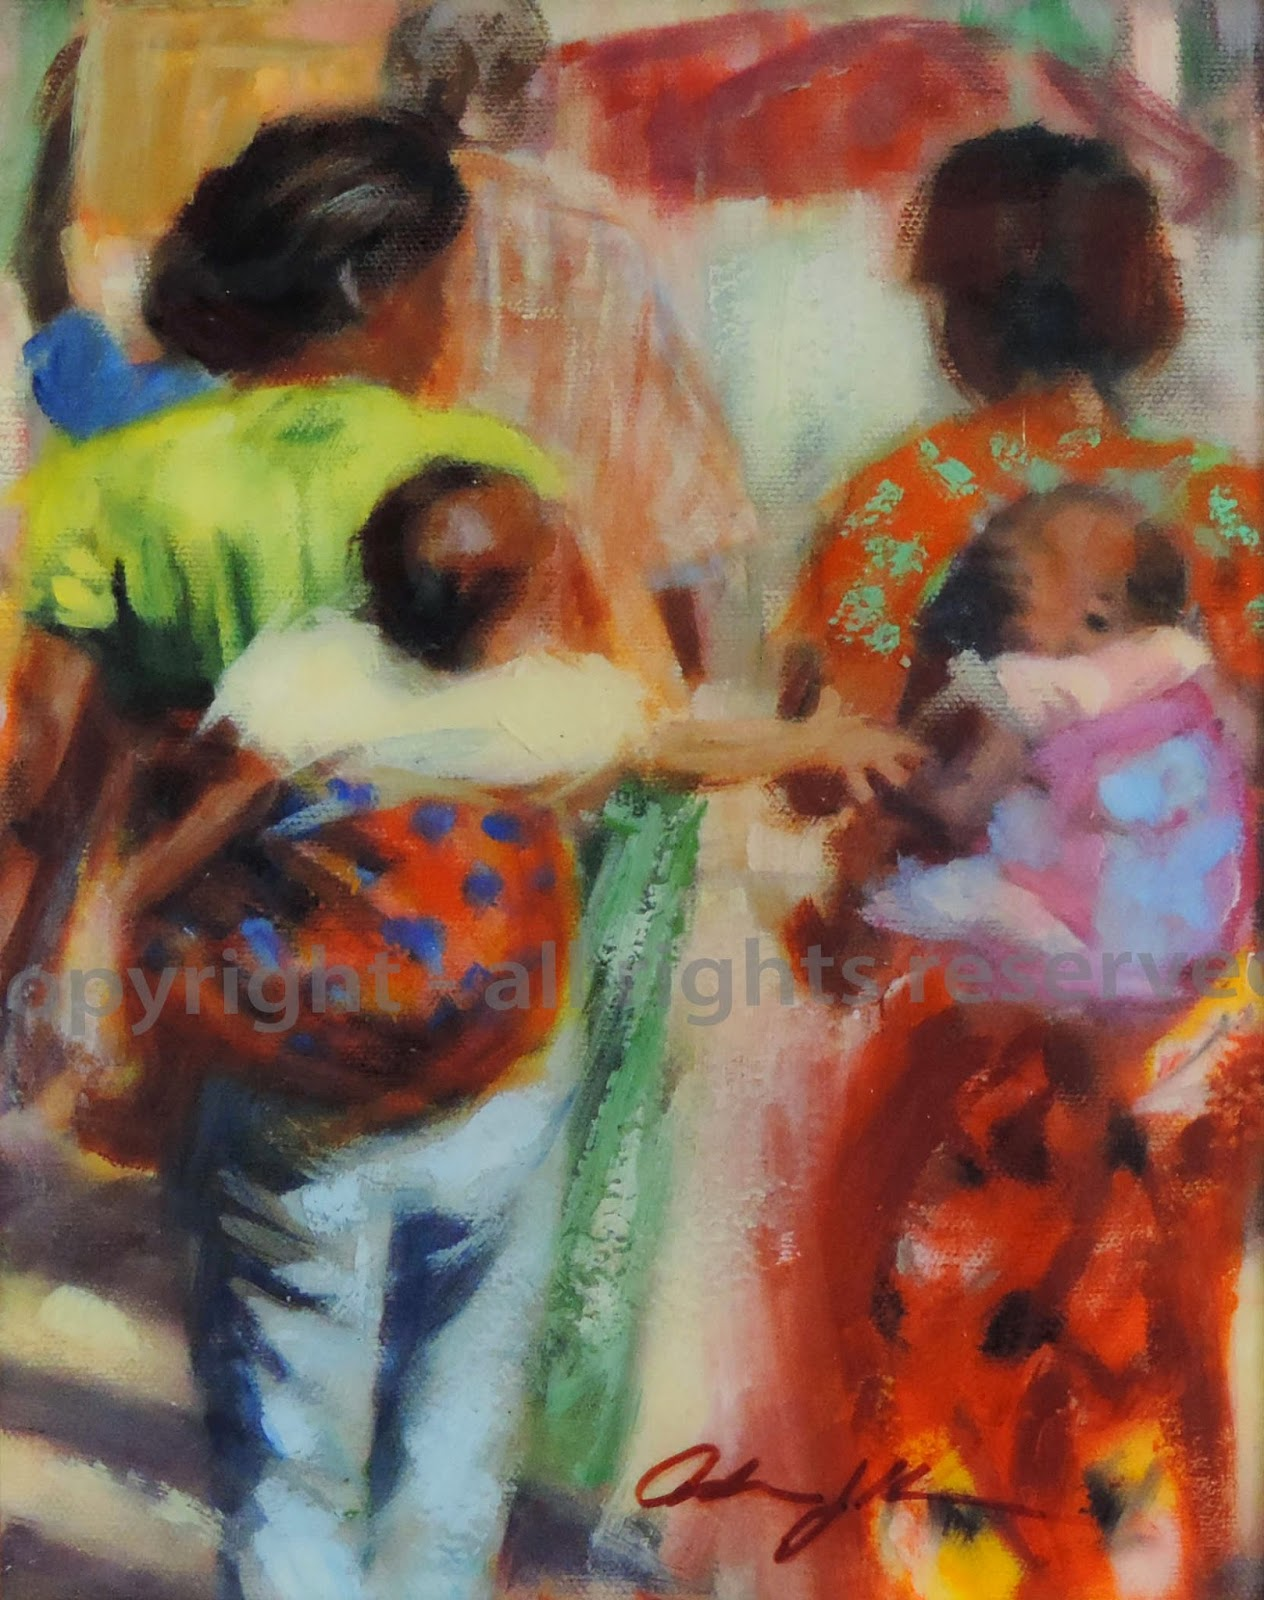 Babies, oil painting by Adrienne kralick